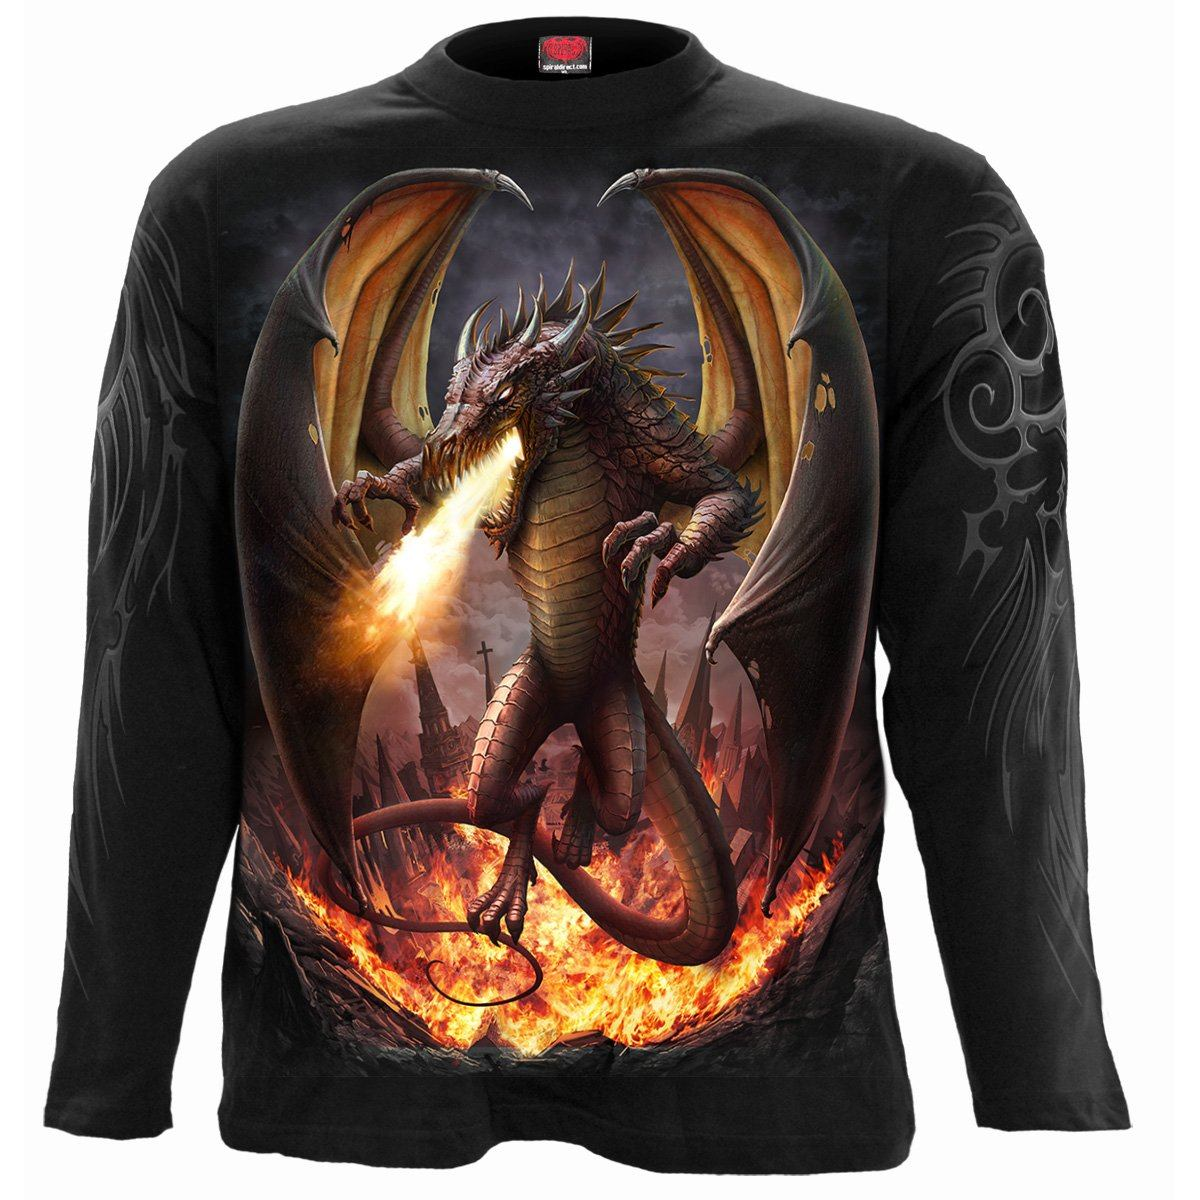 DRACO UNLEASHED - Rampaging Dragon Longsleeve Shirt